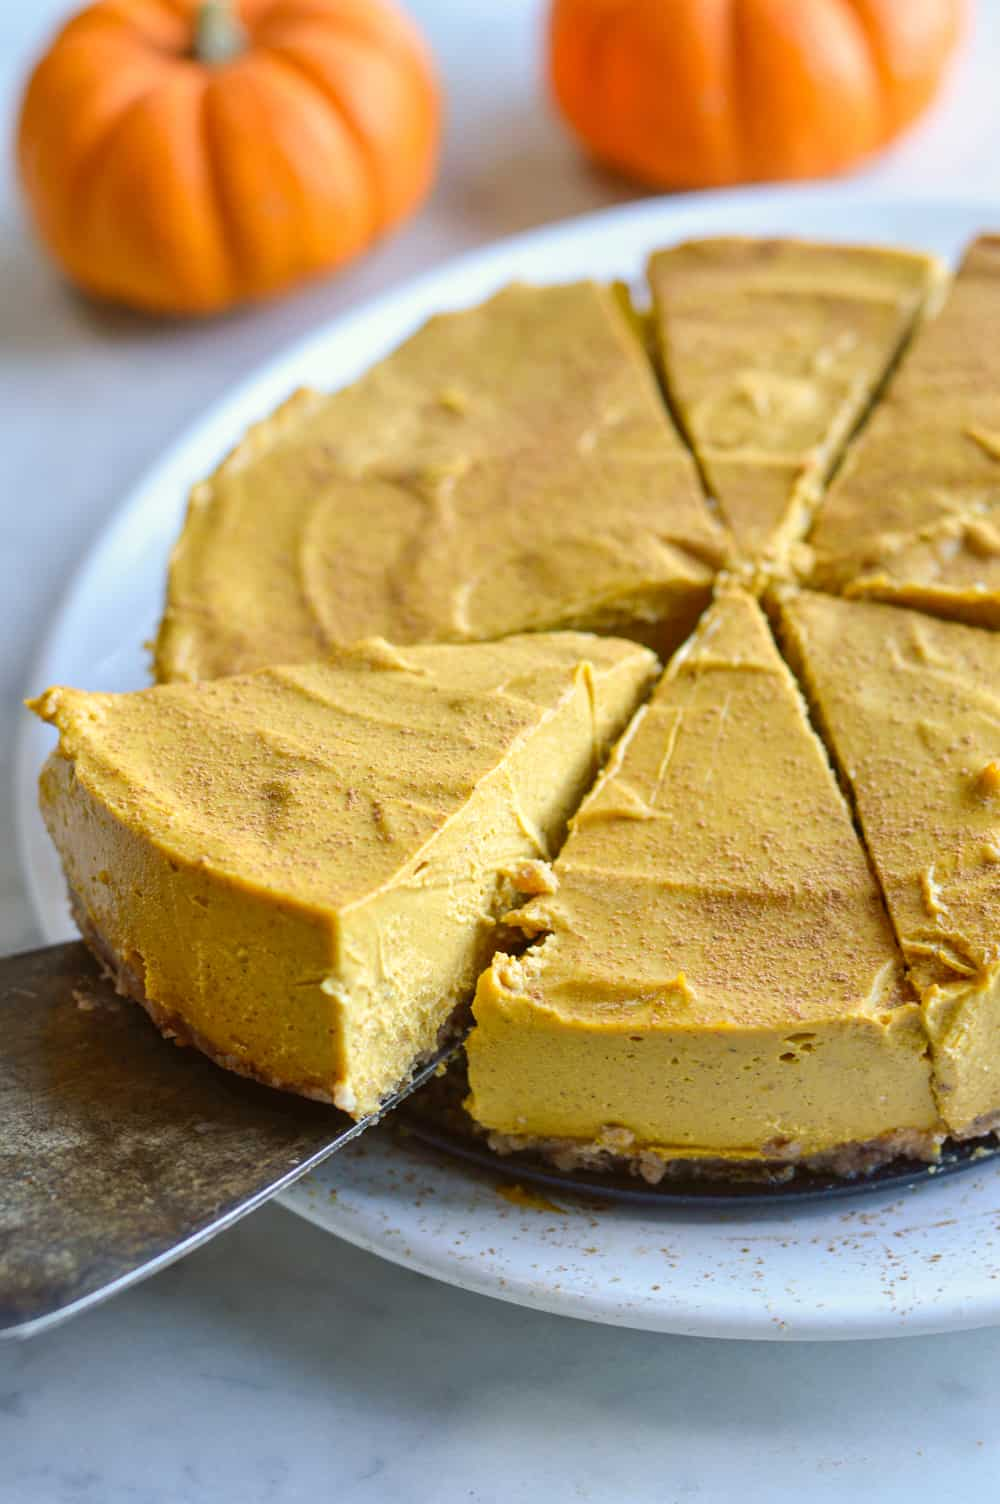 paleo pumpkin cheesecake slice from whole